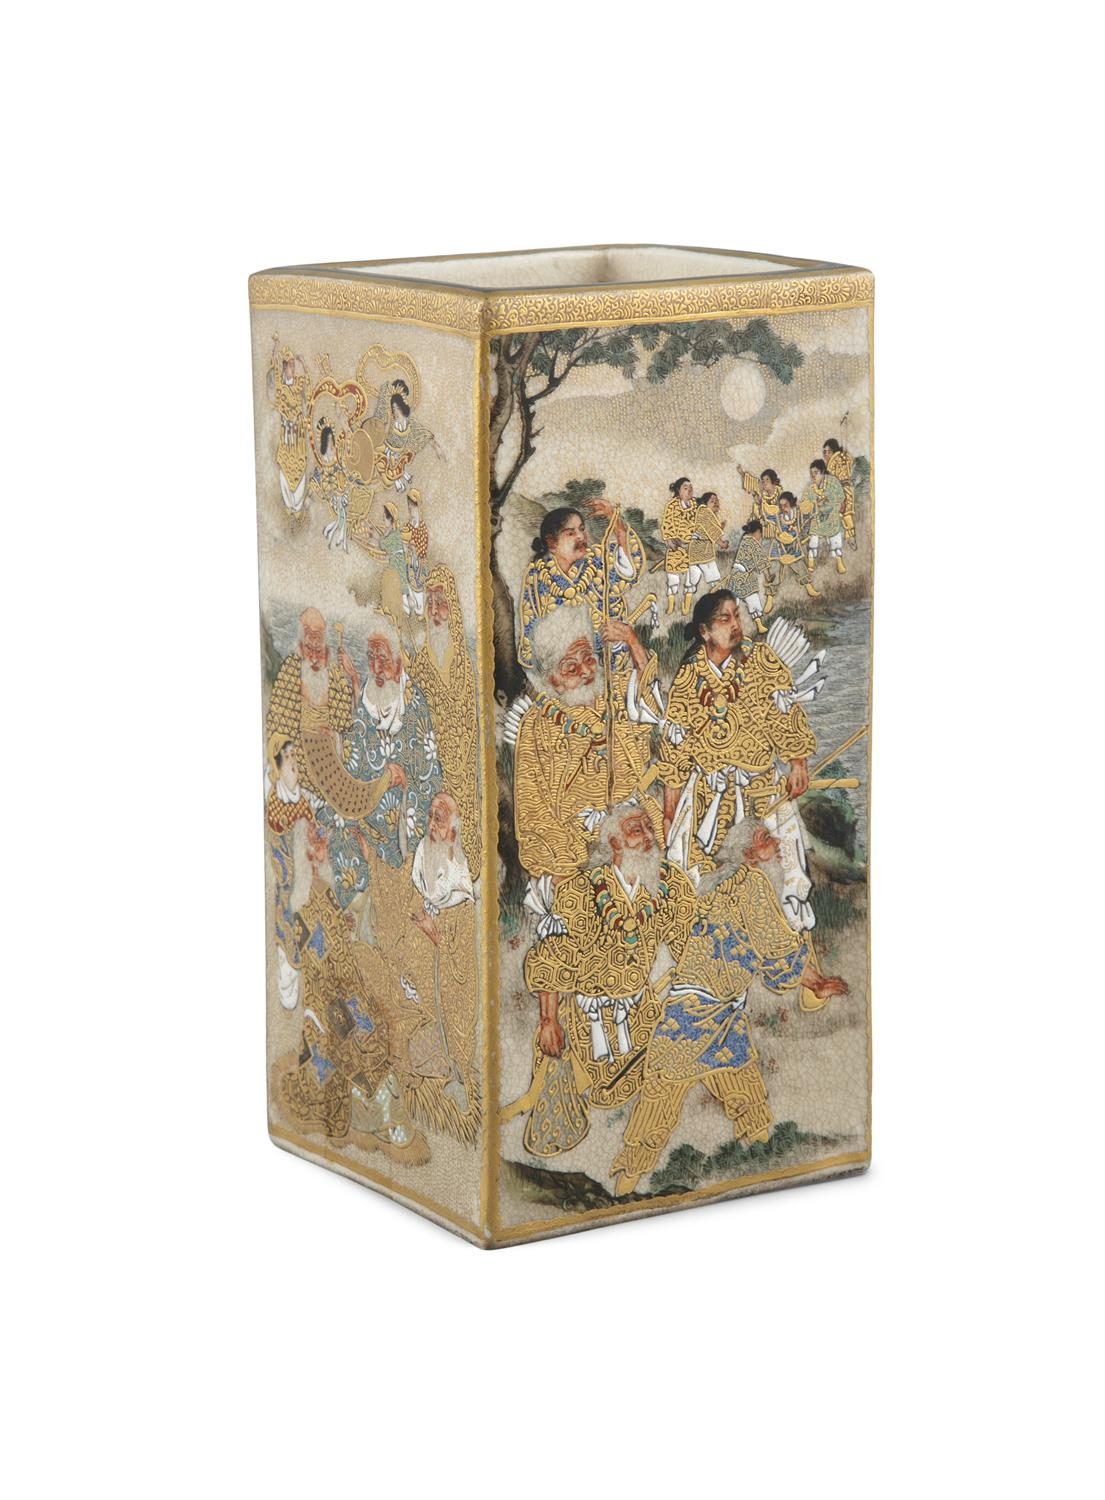 A SATSUMA 'WARRIORS' SQUARE POT POSSIBLY BY RYUZAN 龍山 Japan, Meiji period Richly adorned in gilt and - Image 4 of 14